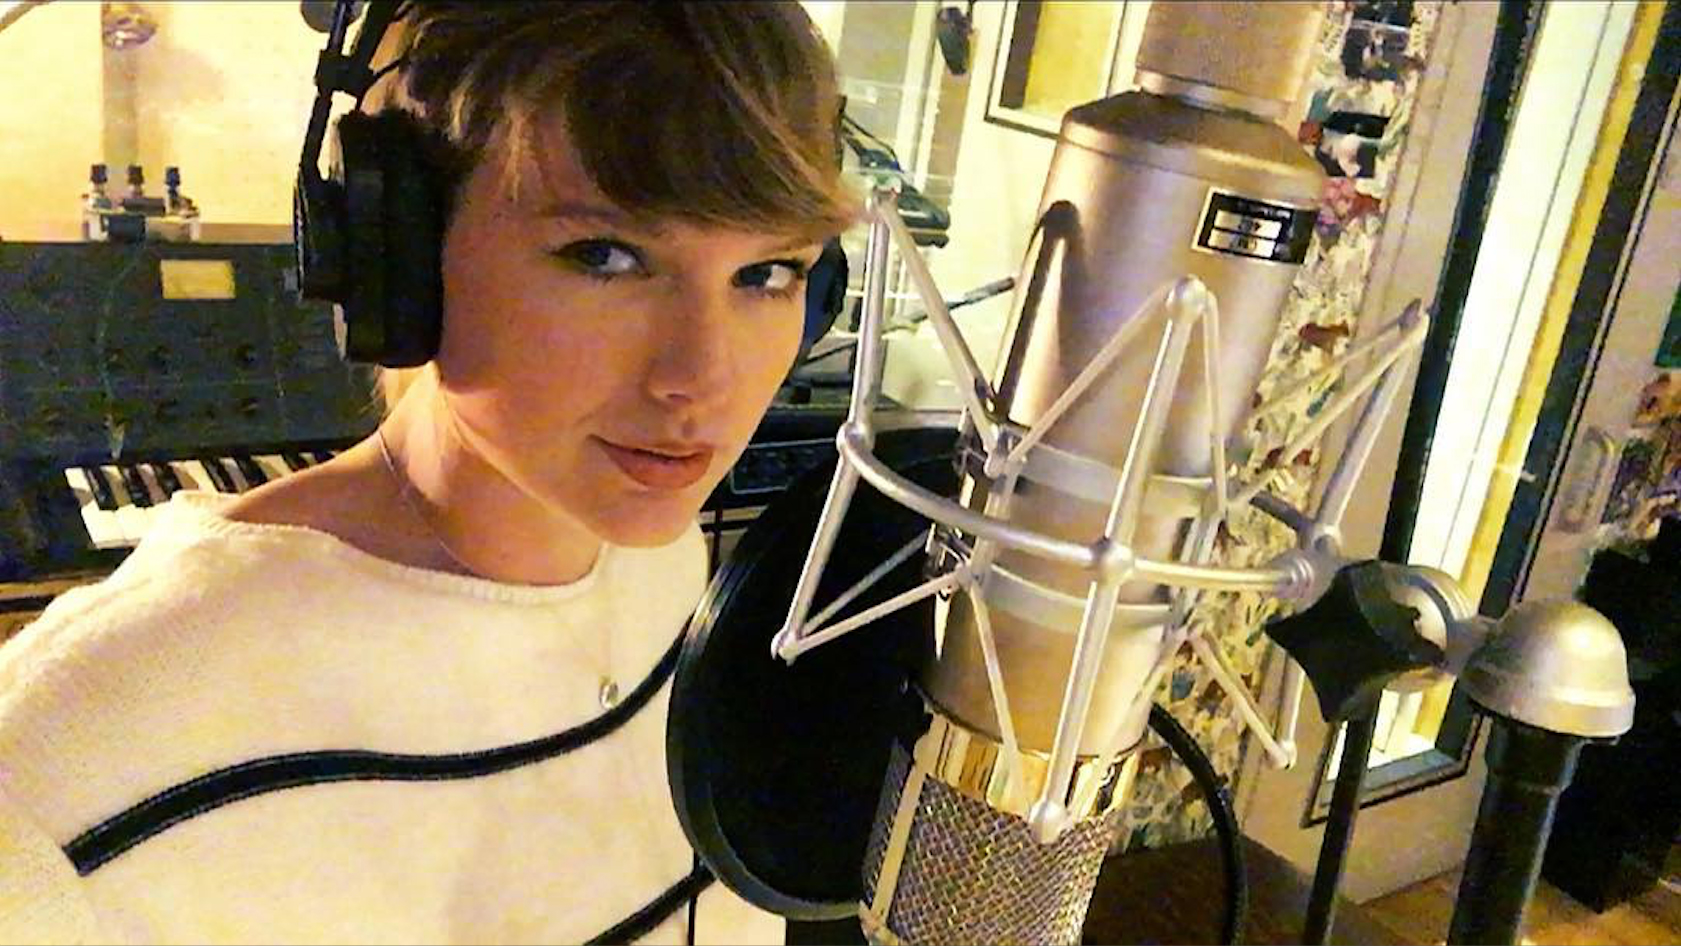 Taylor Swift Filmed Herself Writing Her New Song, and It Looks Tedious